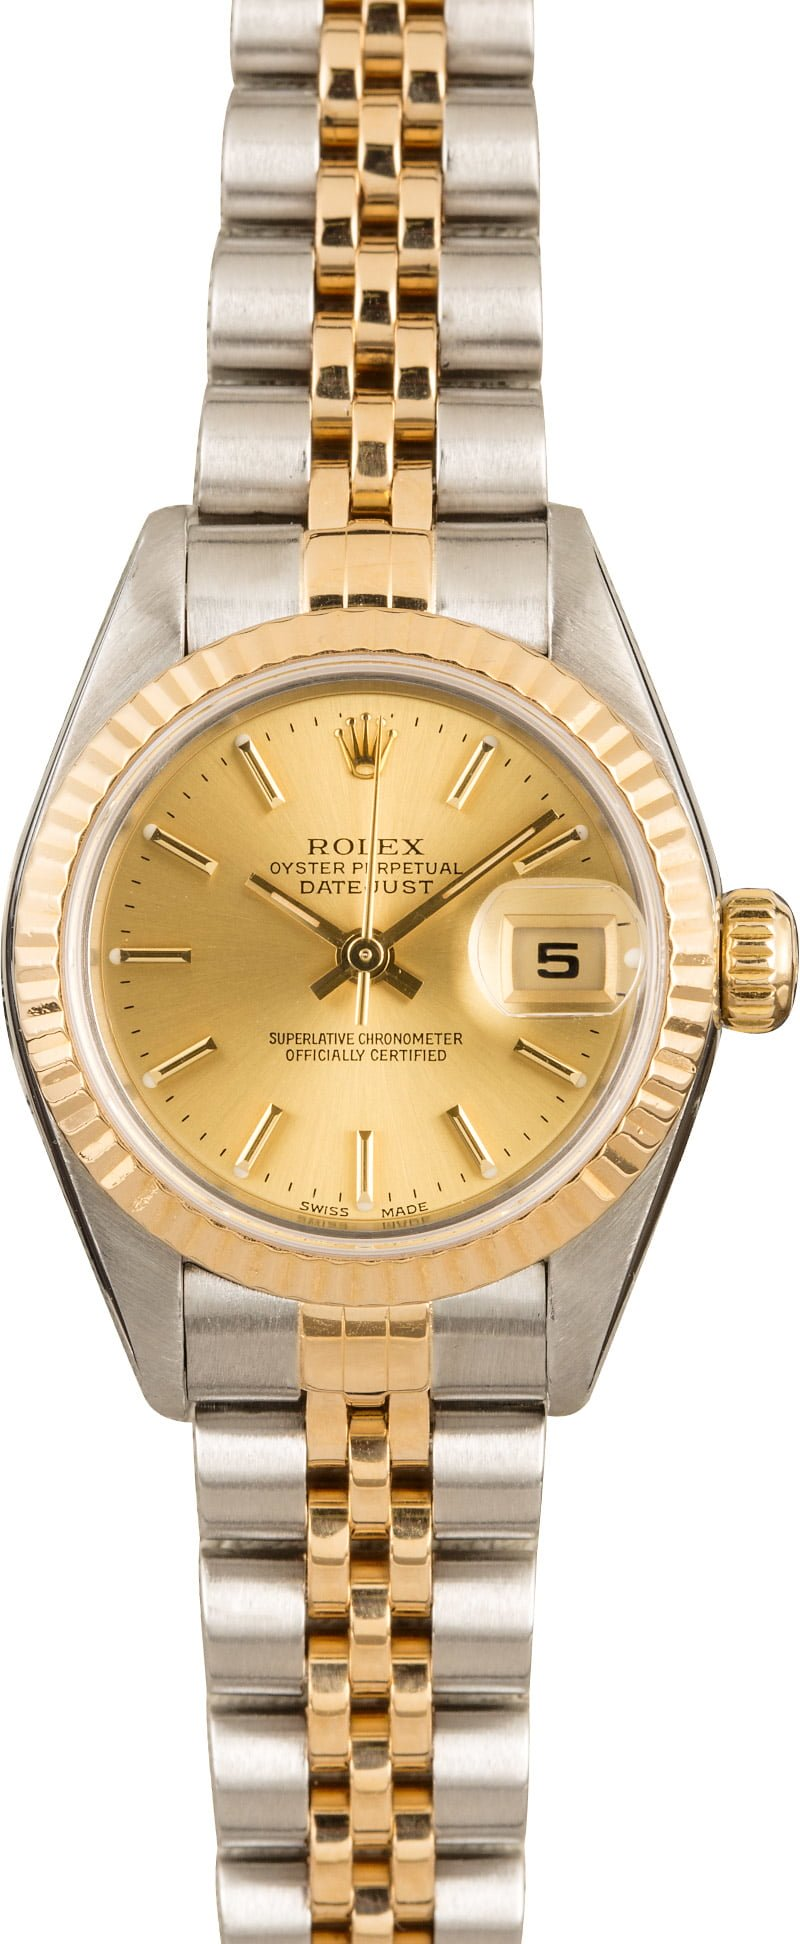 Rolex Watches for mother